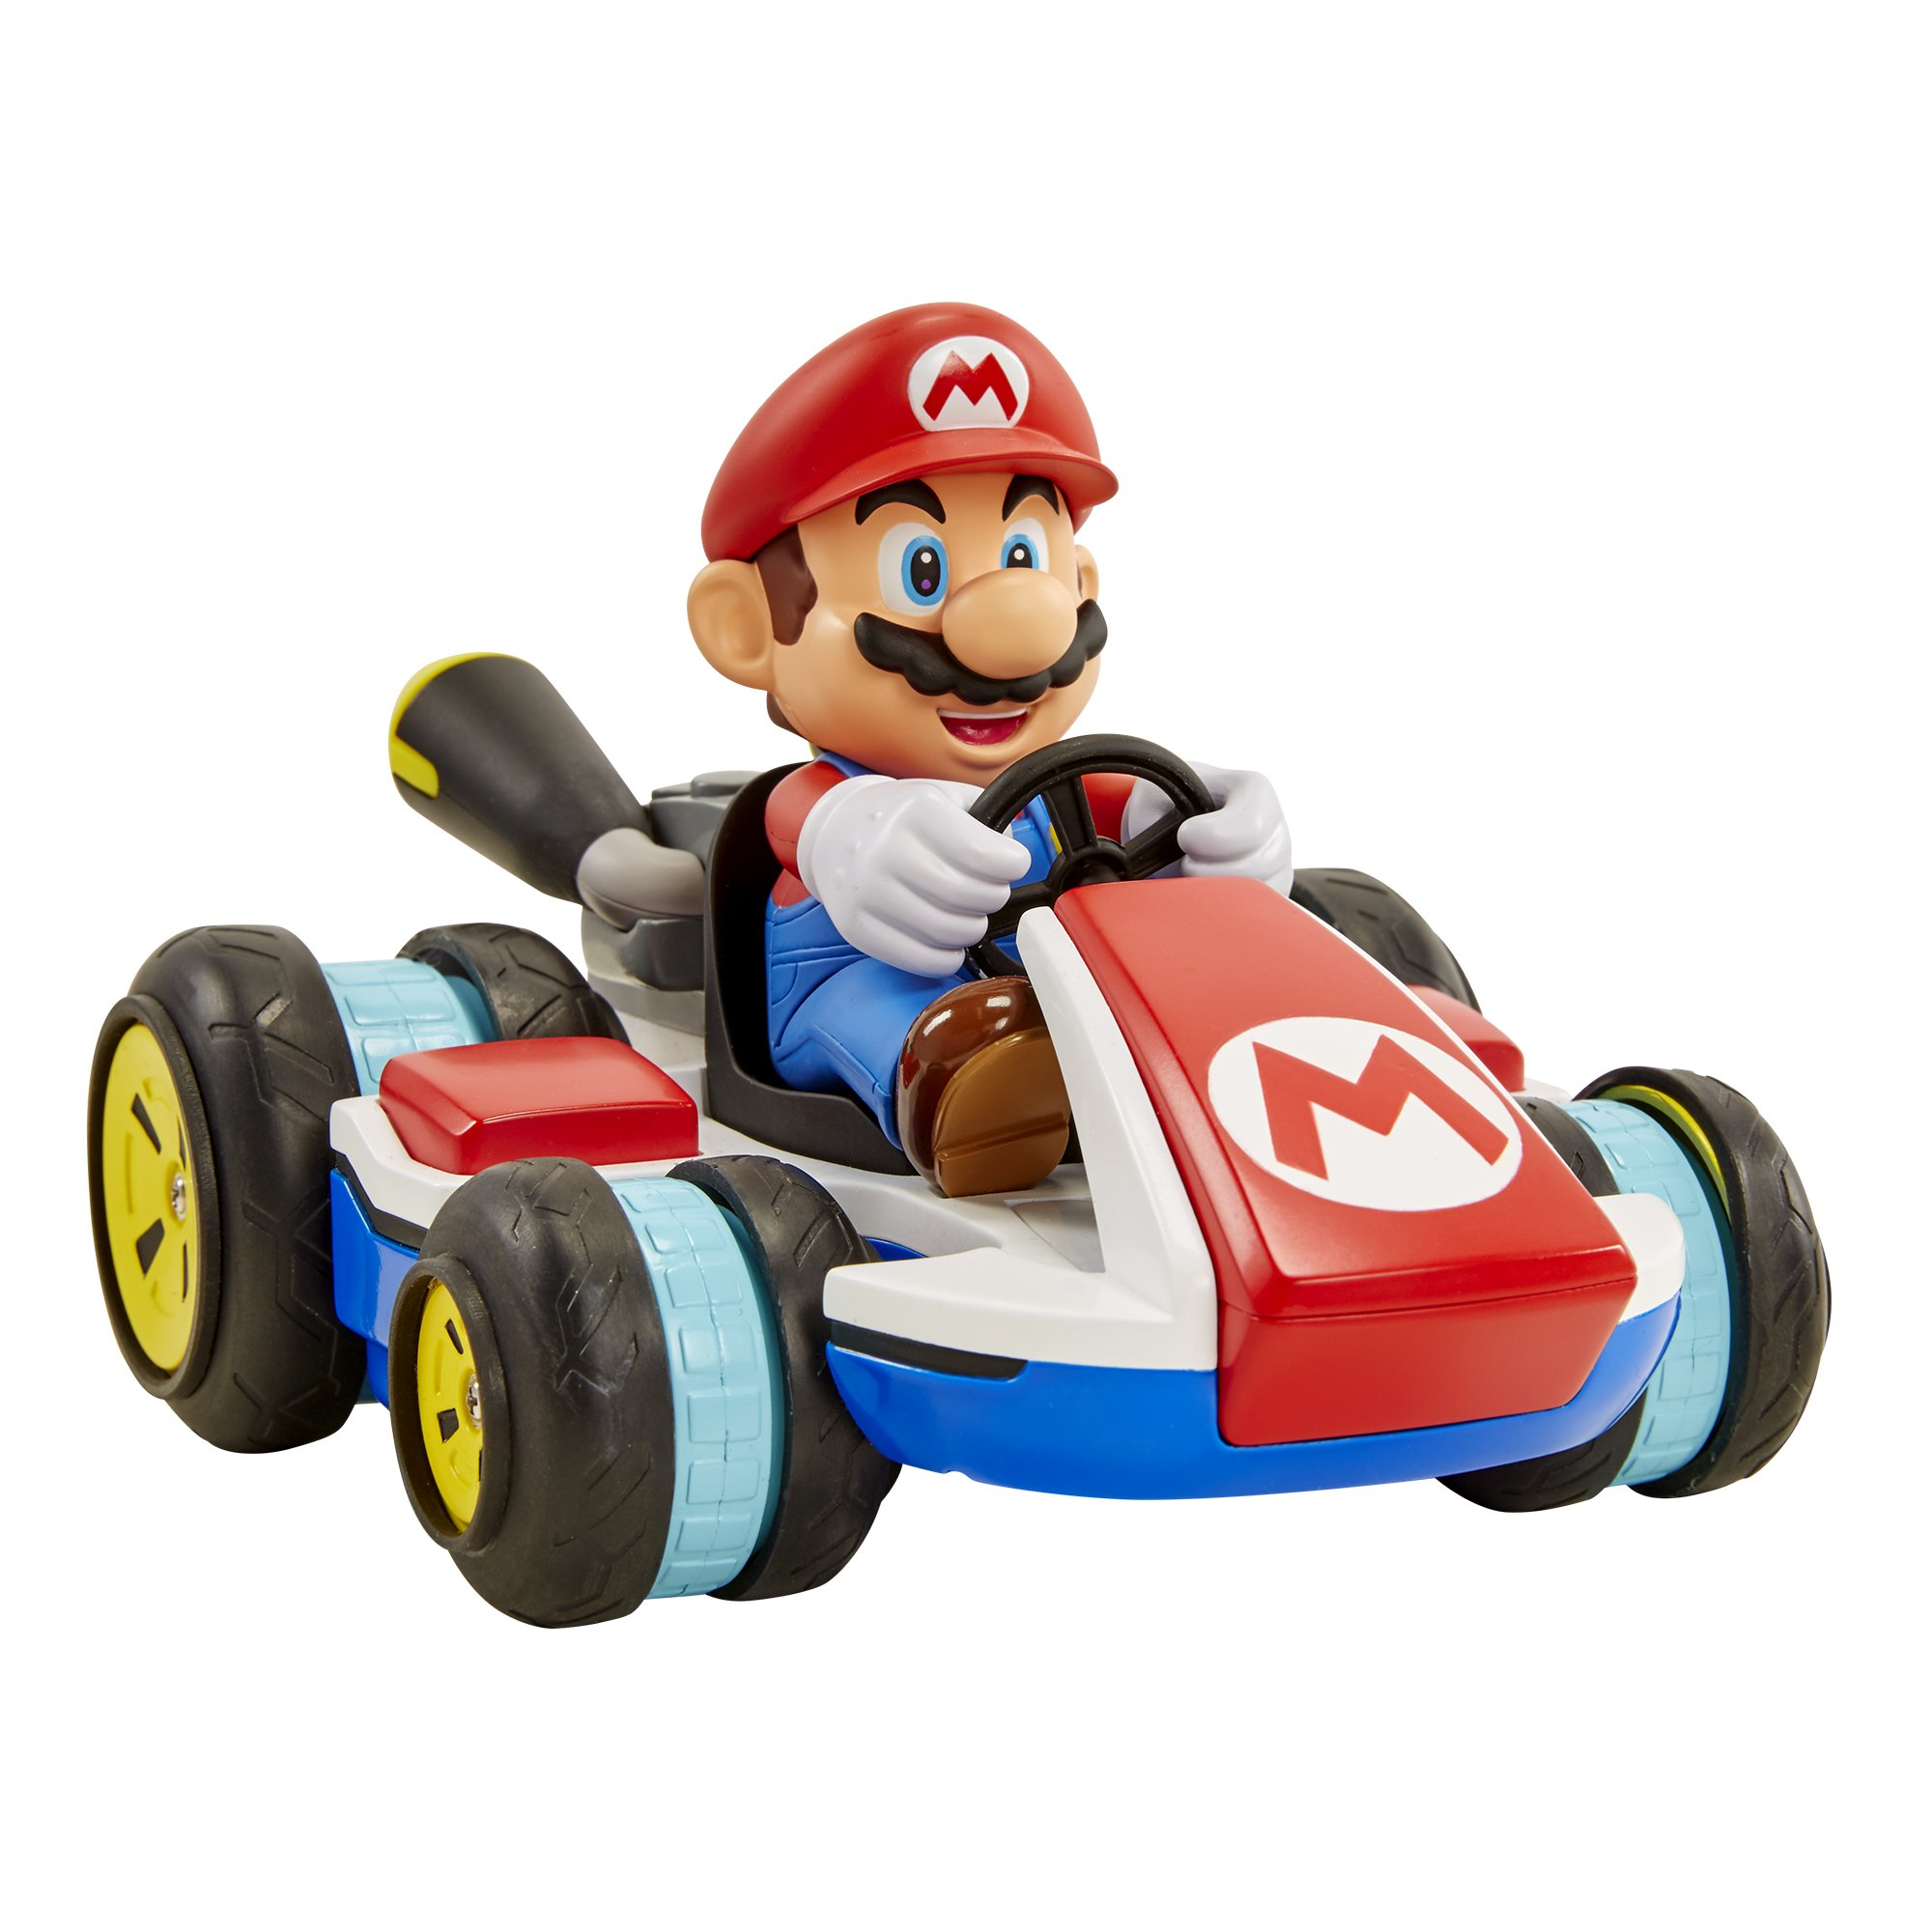 NINTENDO Super Mario Kart 8 Mario Anti-Gravity Mini RC Racer 2.4Ghz by Nintendo (Image #2)